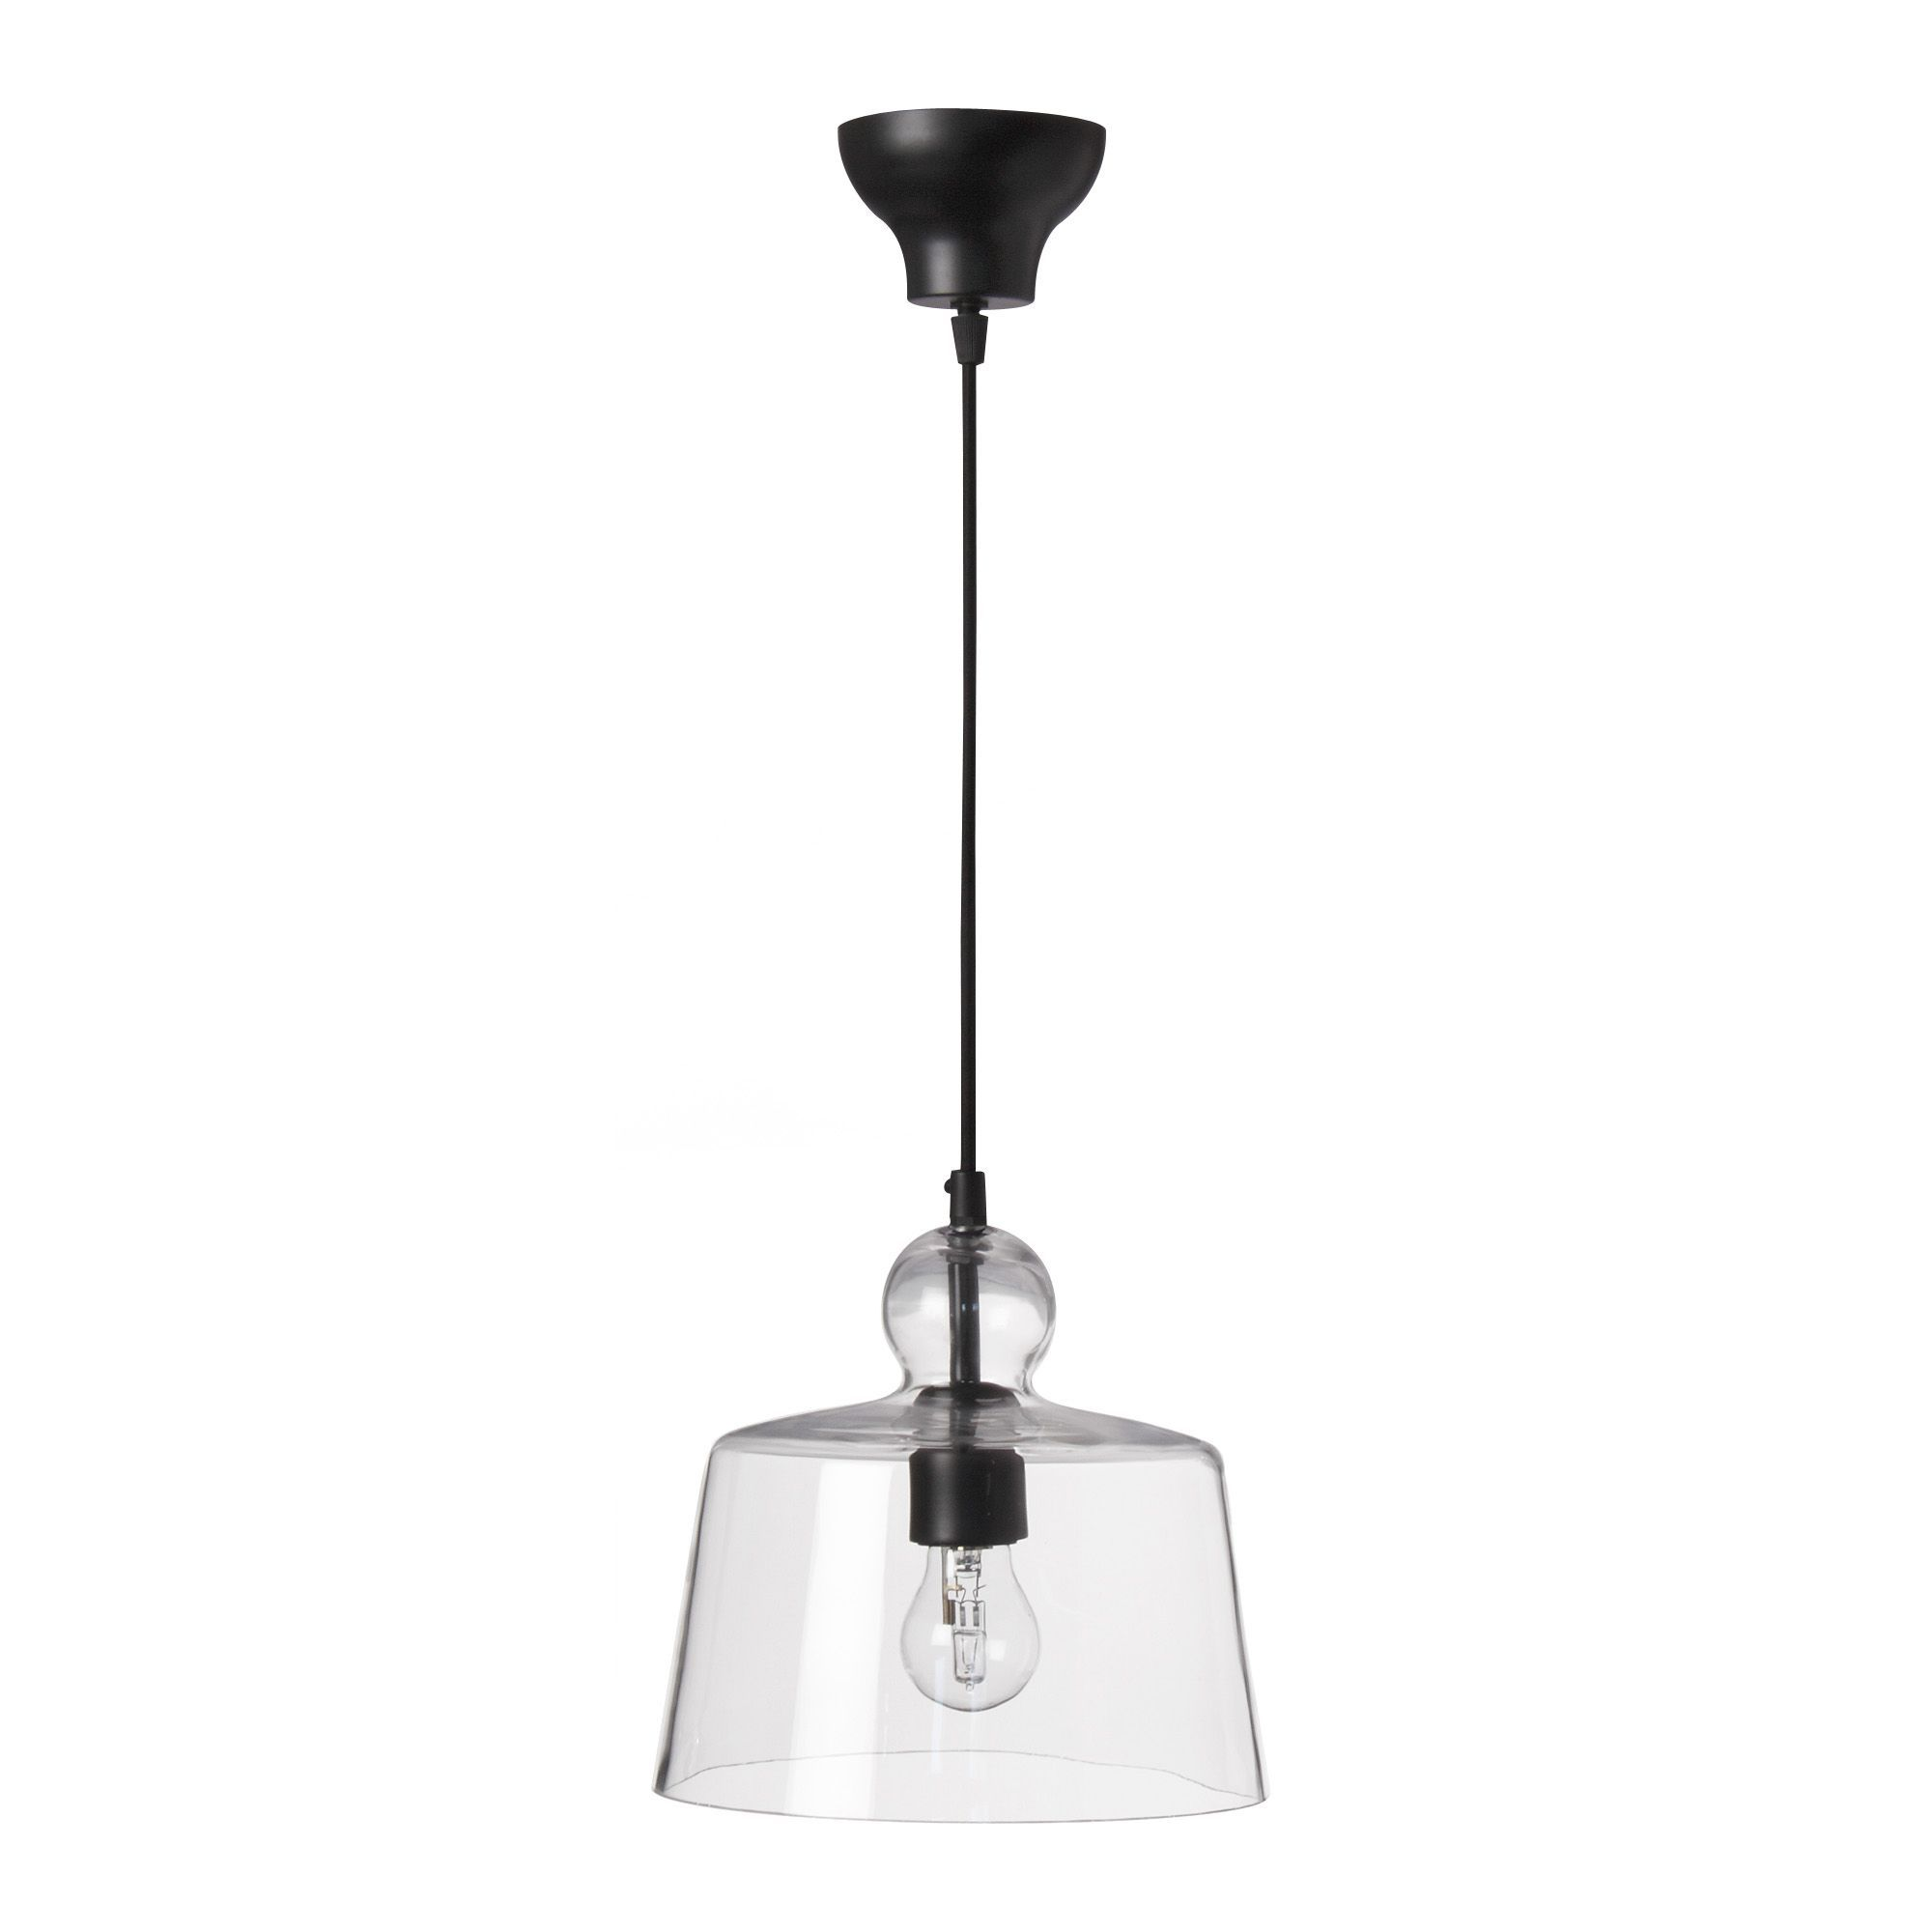 Suspension lumineuse en verre transparent verone for Suspension luminaire salon